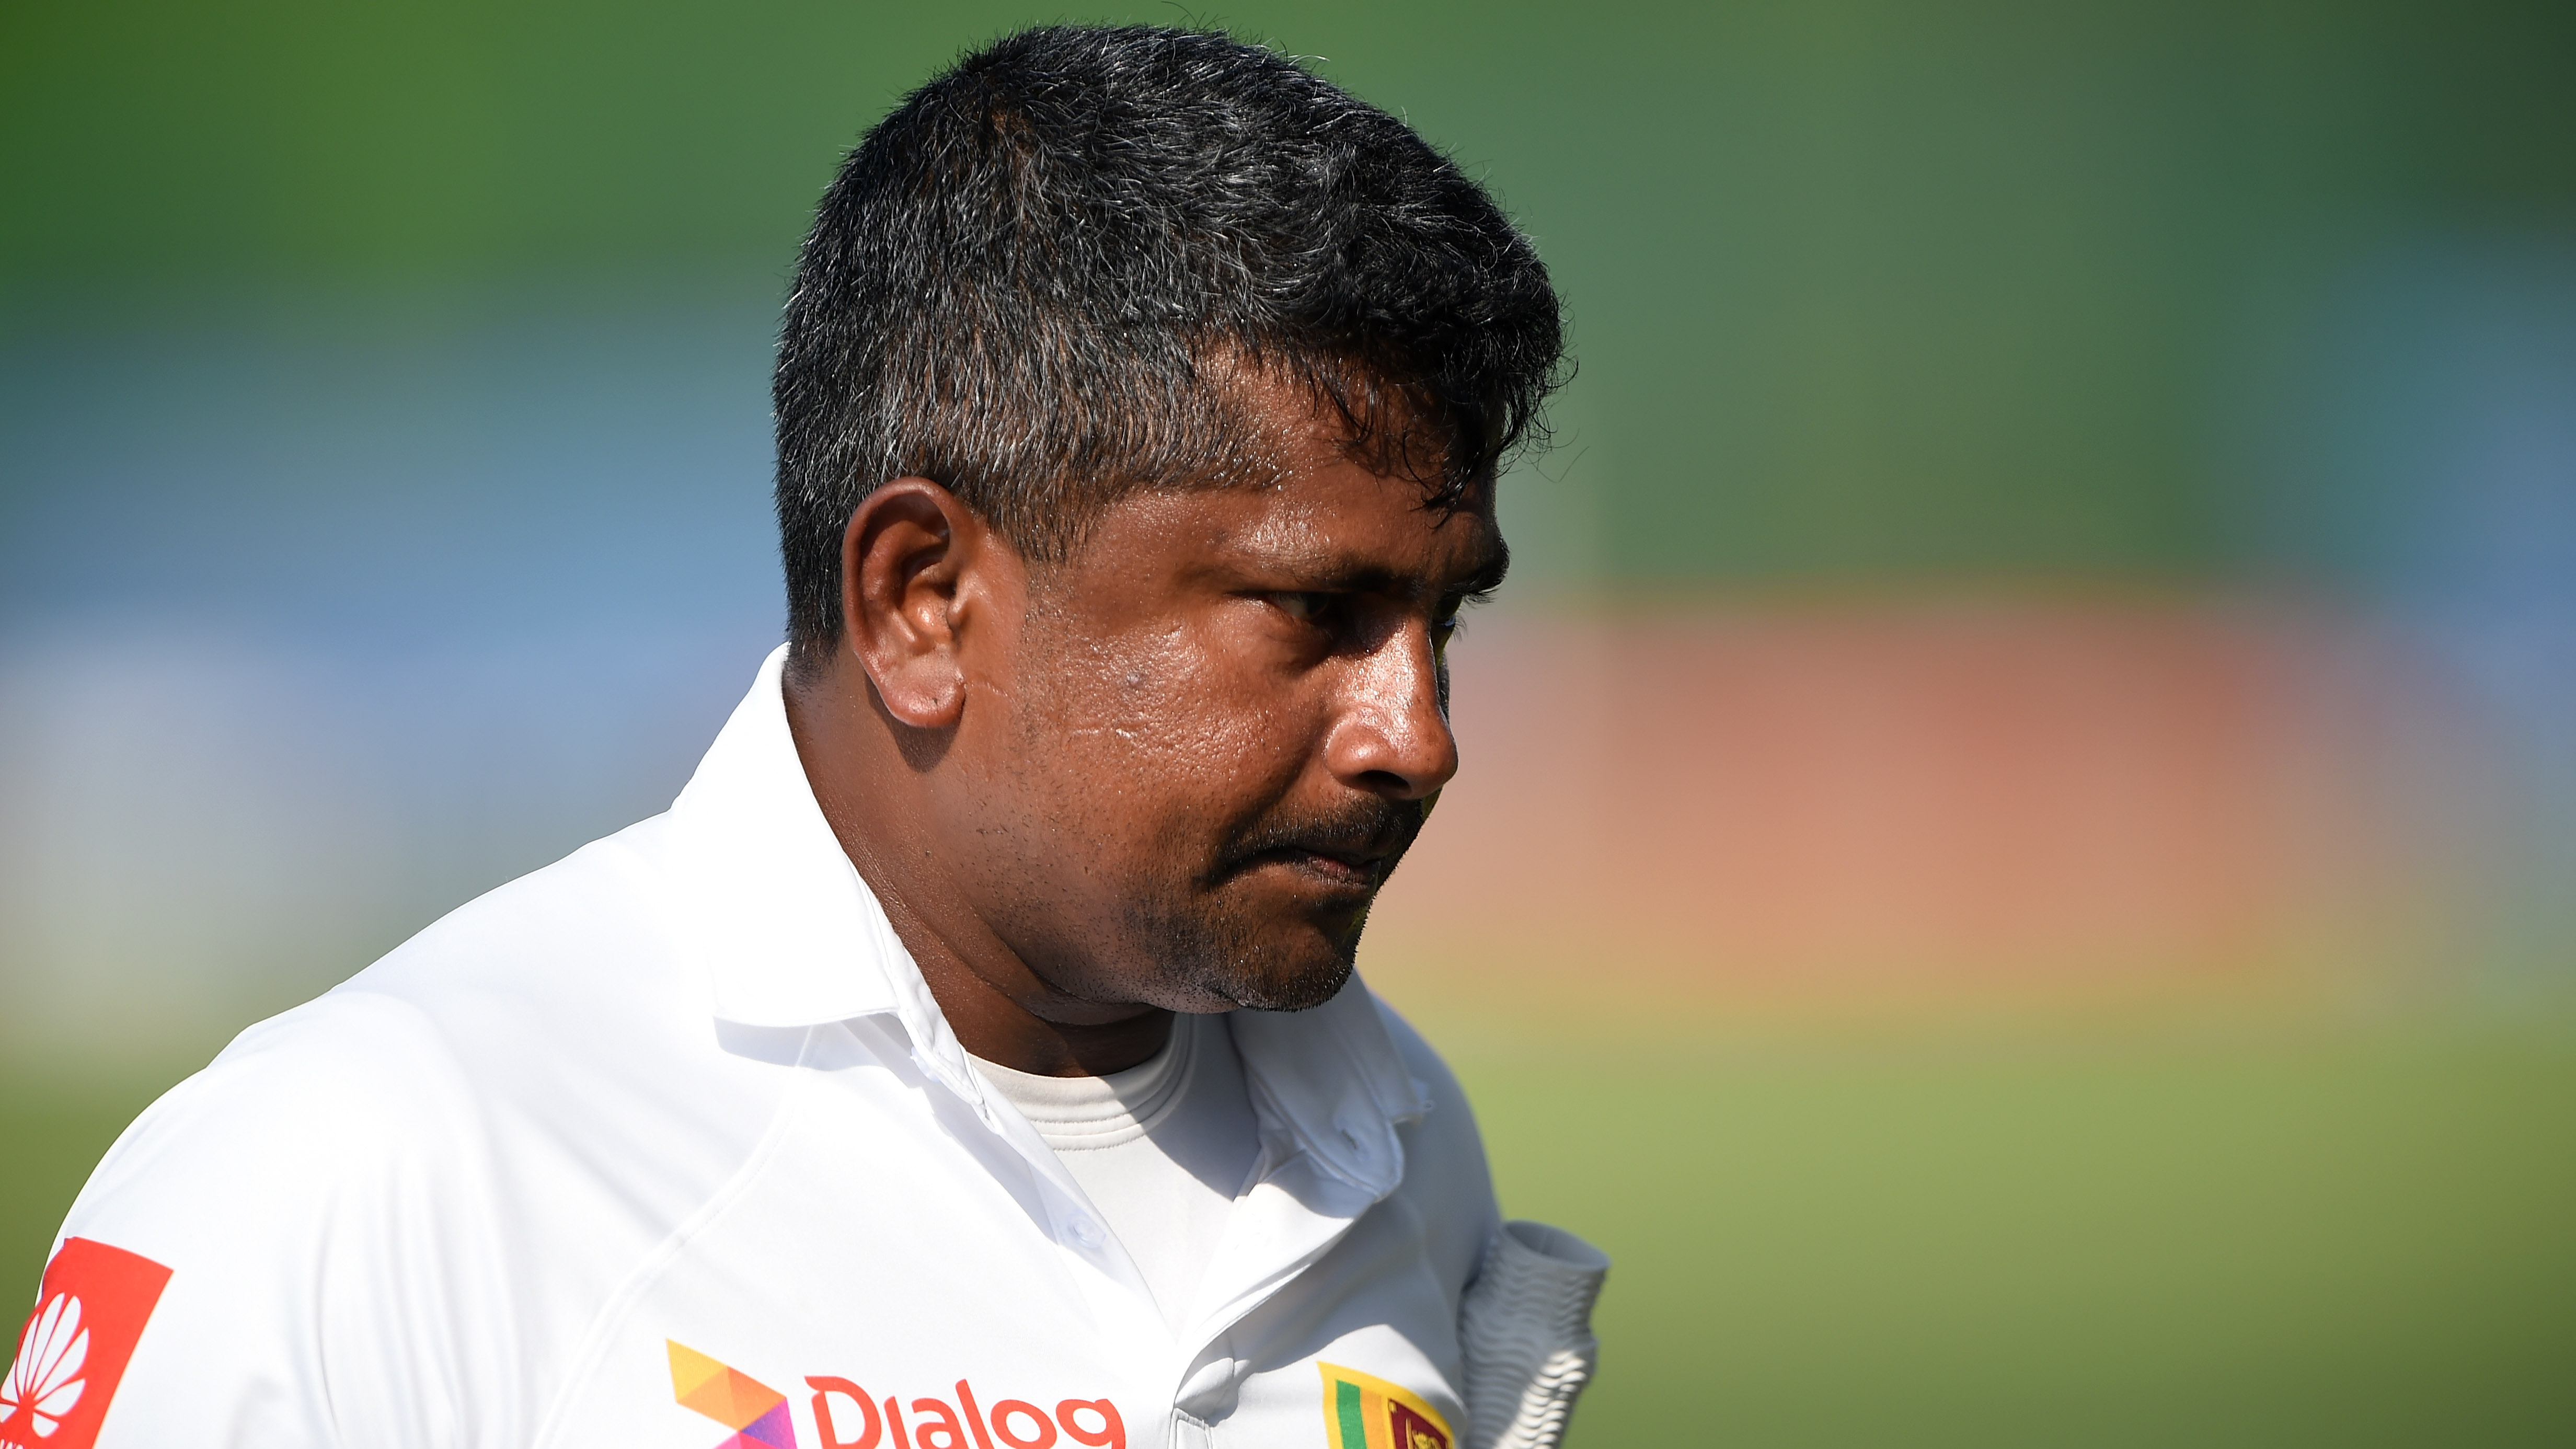 Rangana Herath could retire after England Test series this November